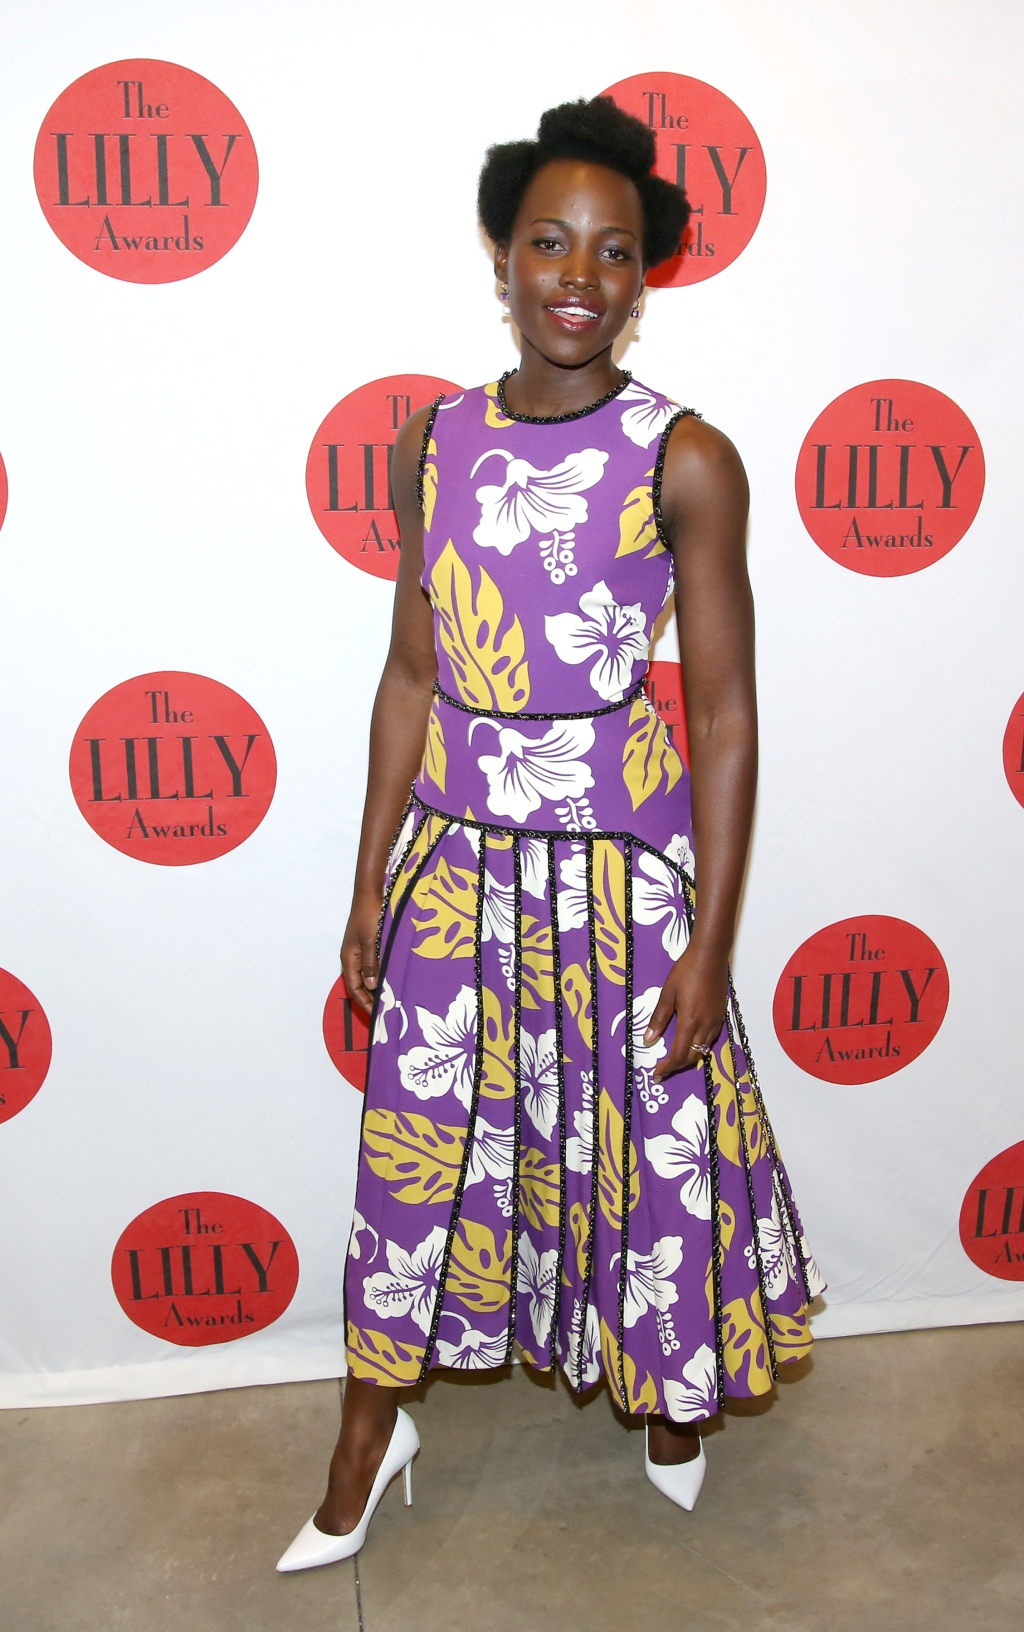 7th Annual Lilly Awards